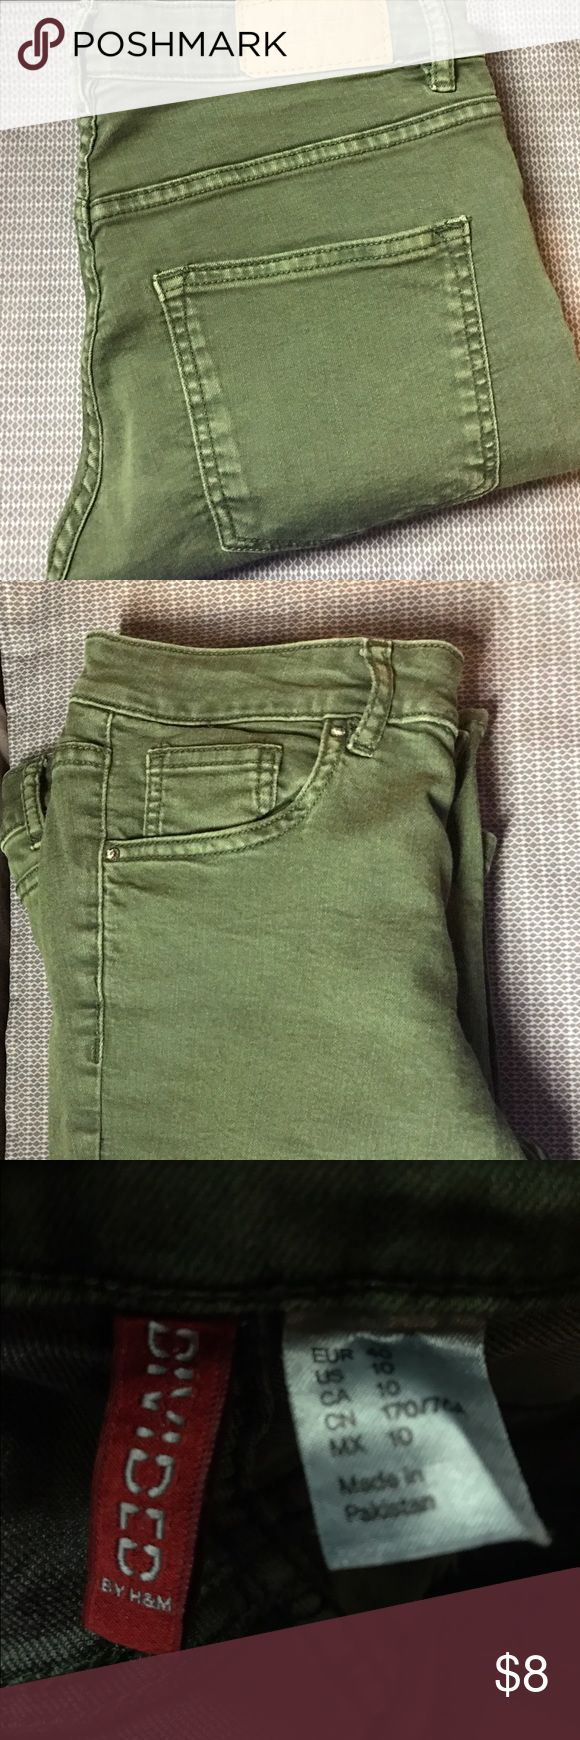 Green Skinny Jeans H&M Divided // Size 10 Long // Green Skinny Jeans // Only Worn 2-3 Times // Great Condition // H&M Pants Skinny